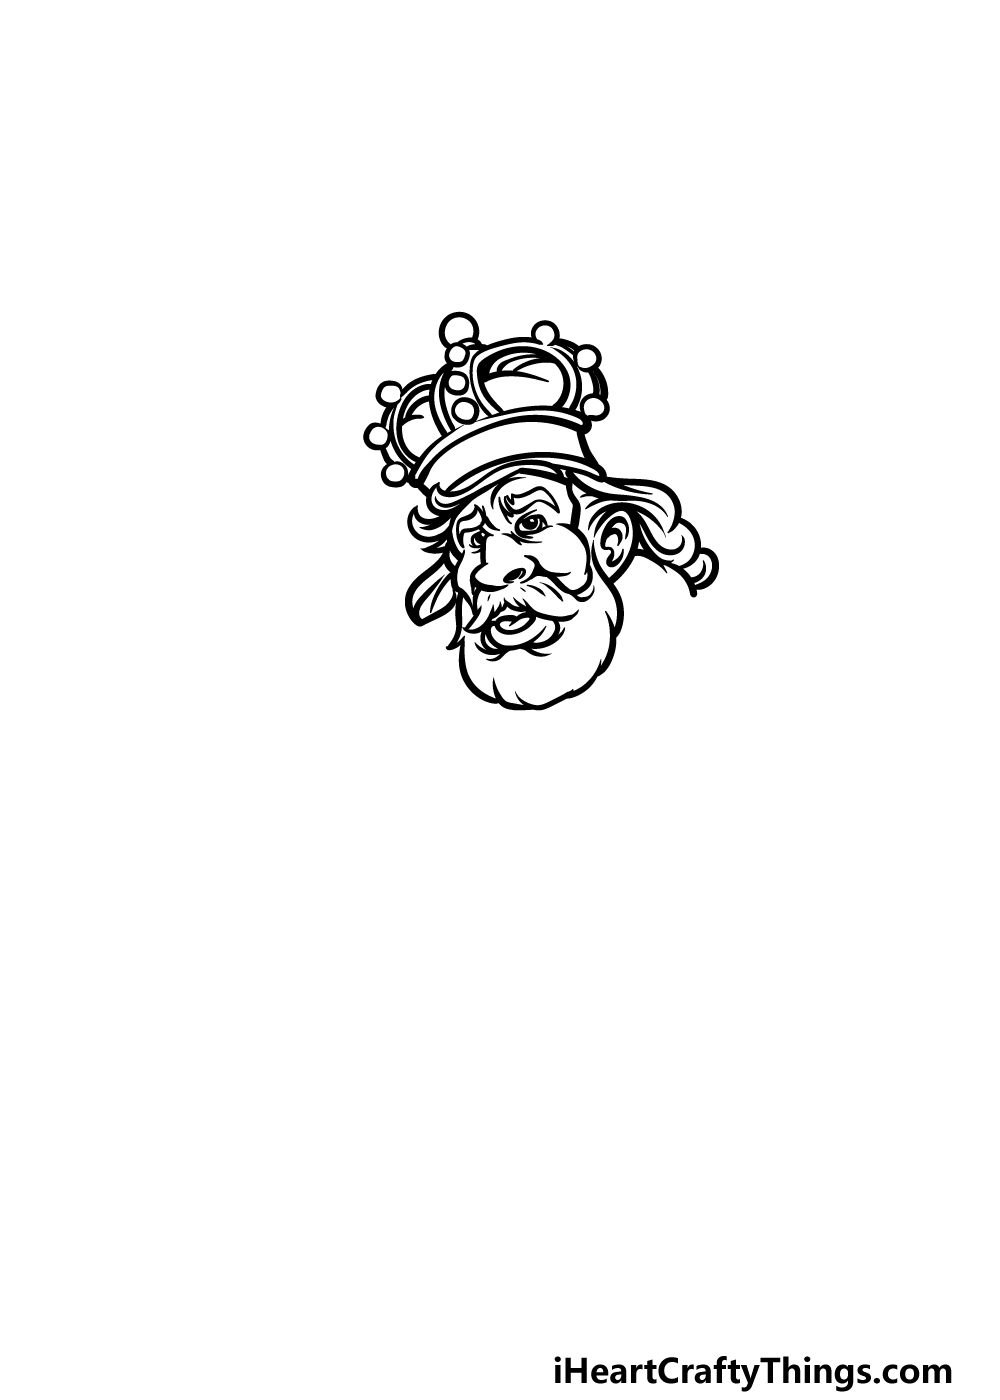 how to draw a King step 2